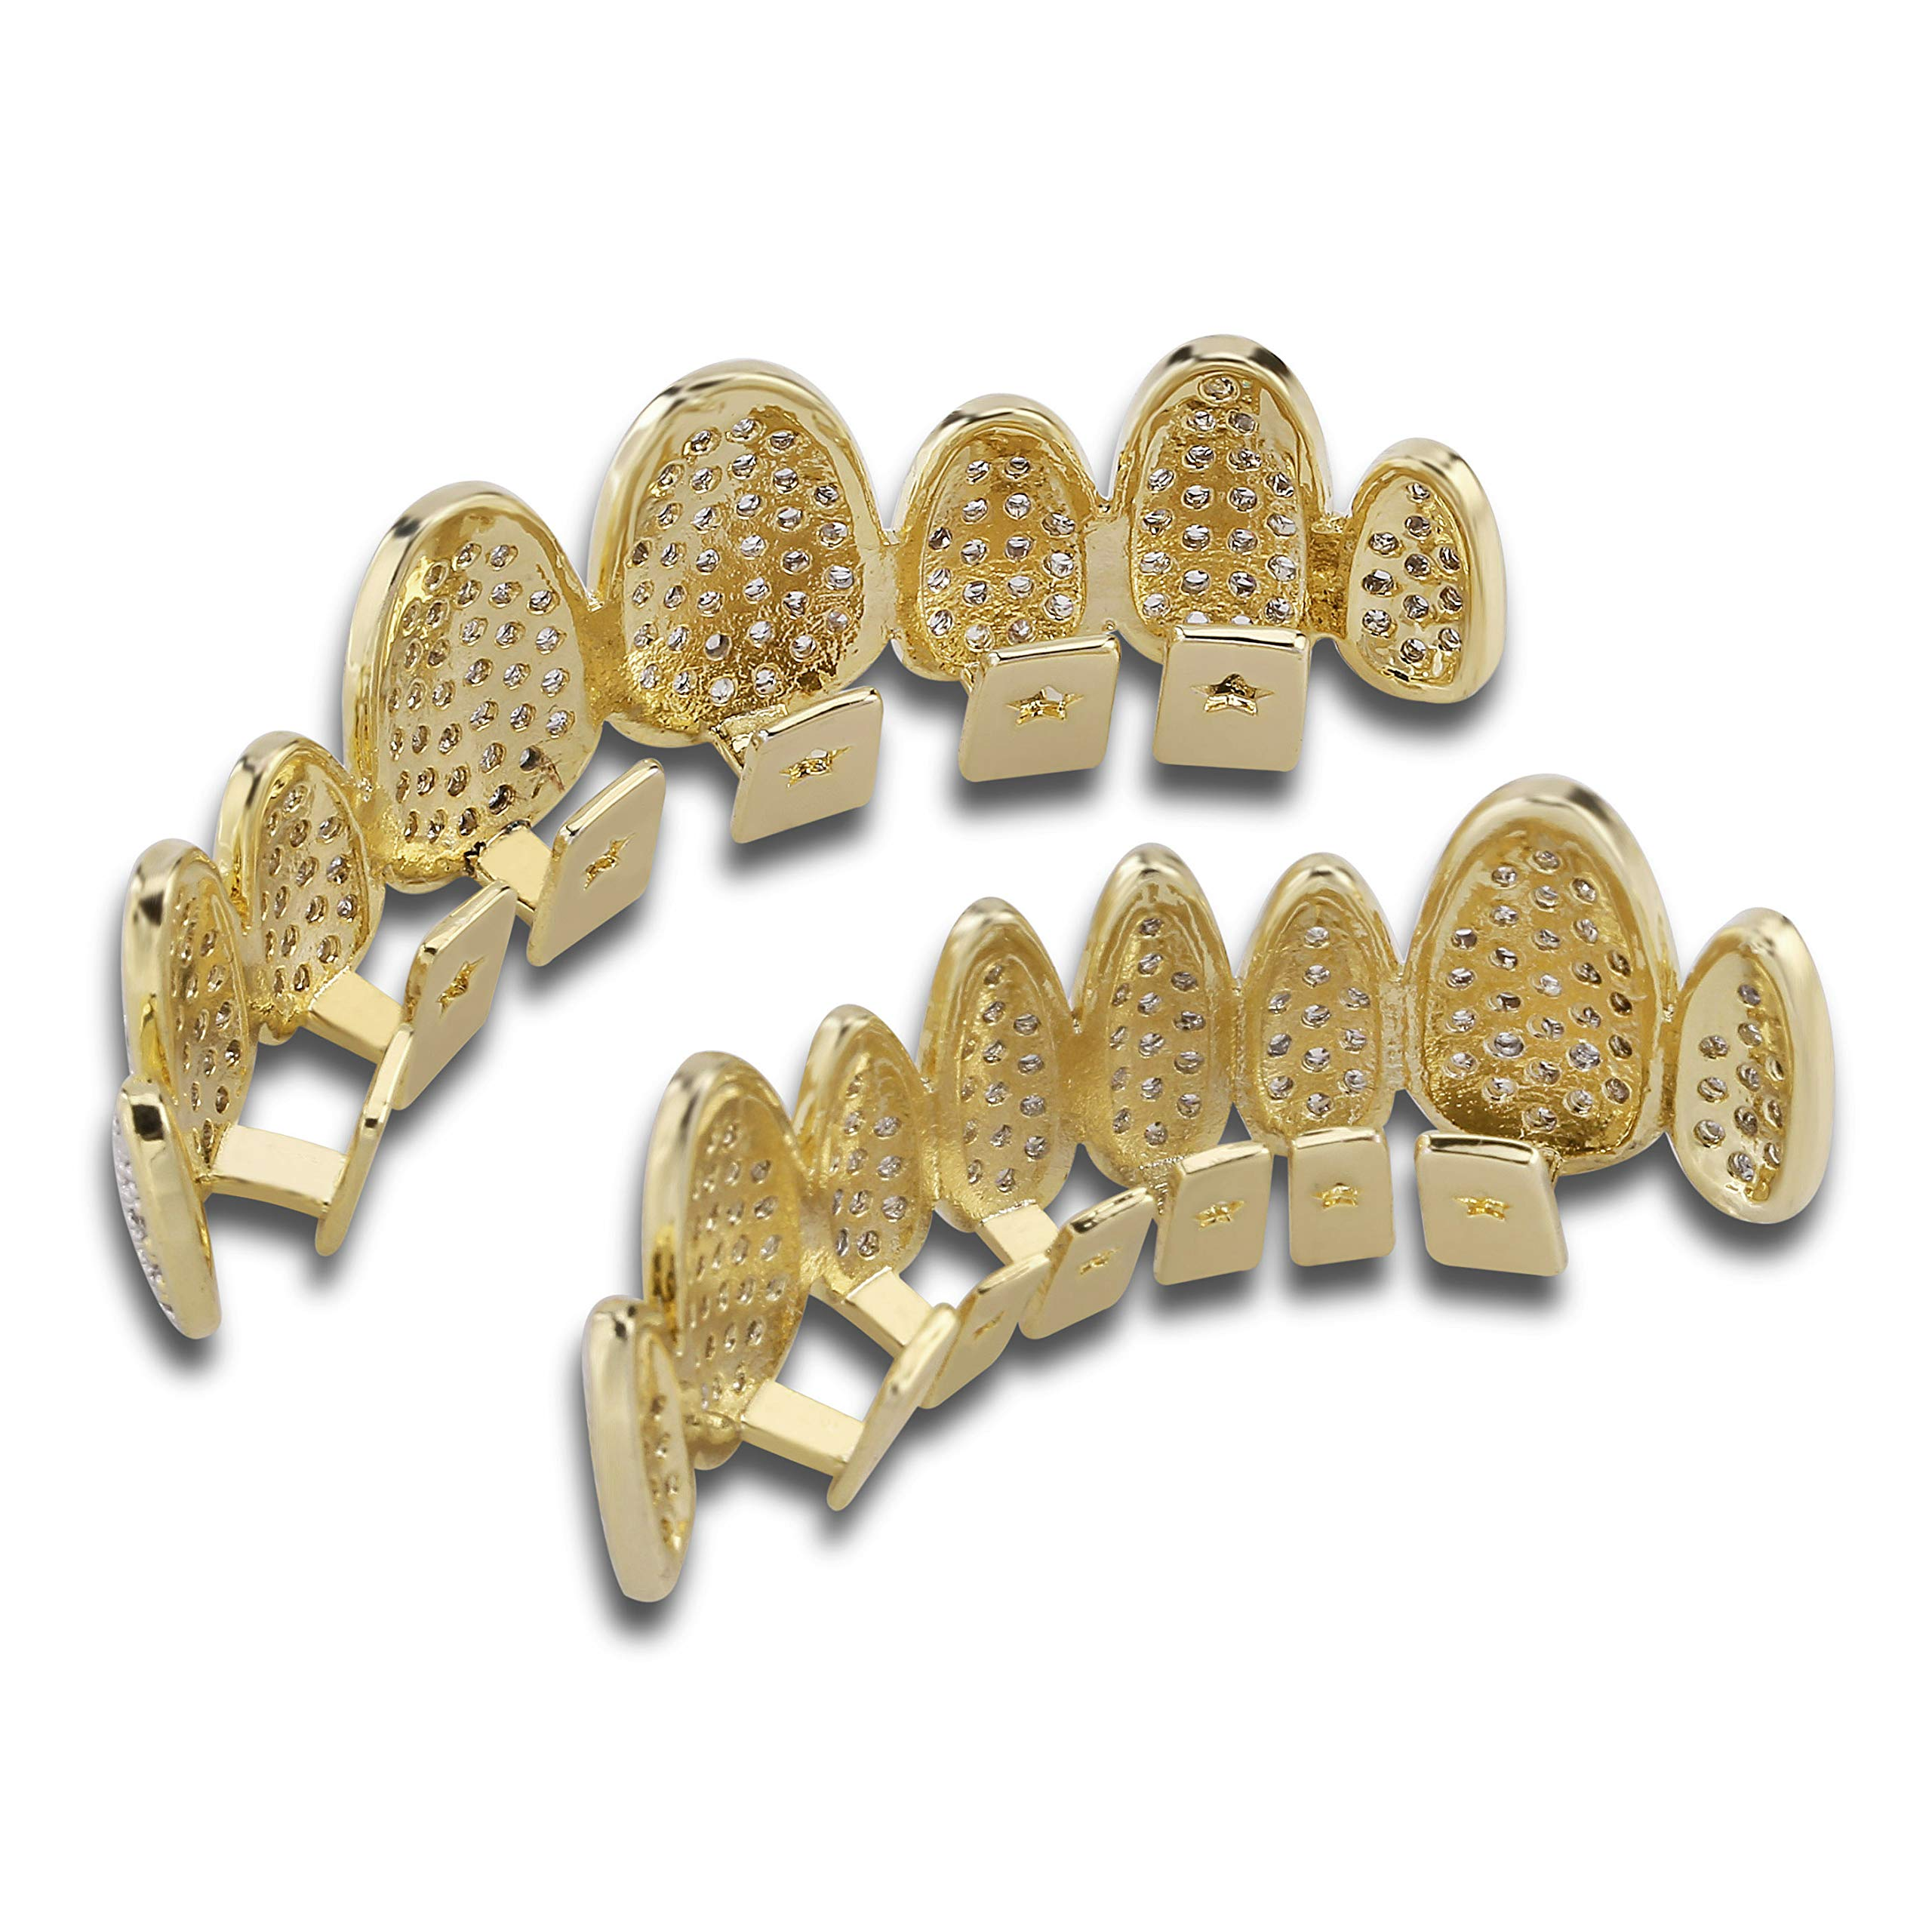 TOPGRILLZ 18K Gold Plated Iced Out Simulated Diamond Grillz Top and Bottom Grills for Your Teeth with Extra Molding Bars Hip Hop (Gold Set) by TOPGRILLZ (Image #5)